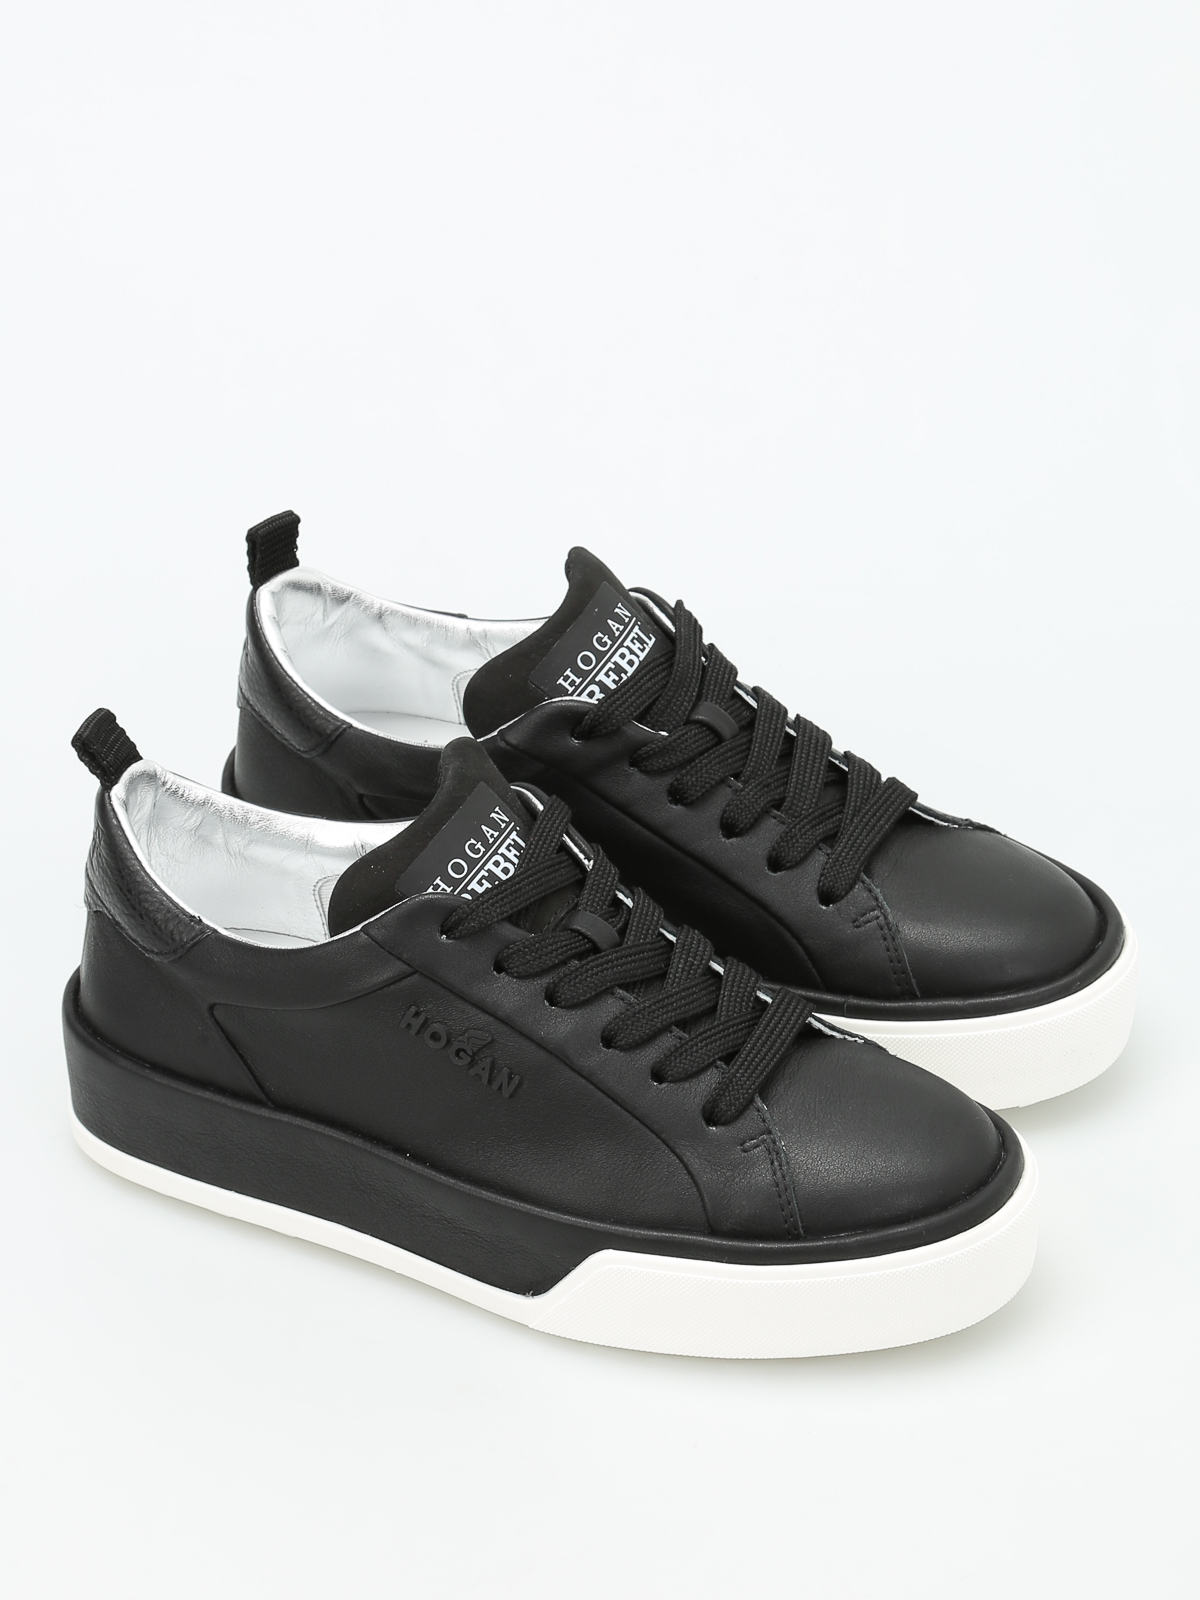 Trainers Hogan Rebel - R320 leather sneakers - HXW3200X630G6CB999